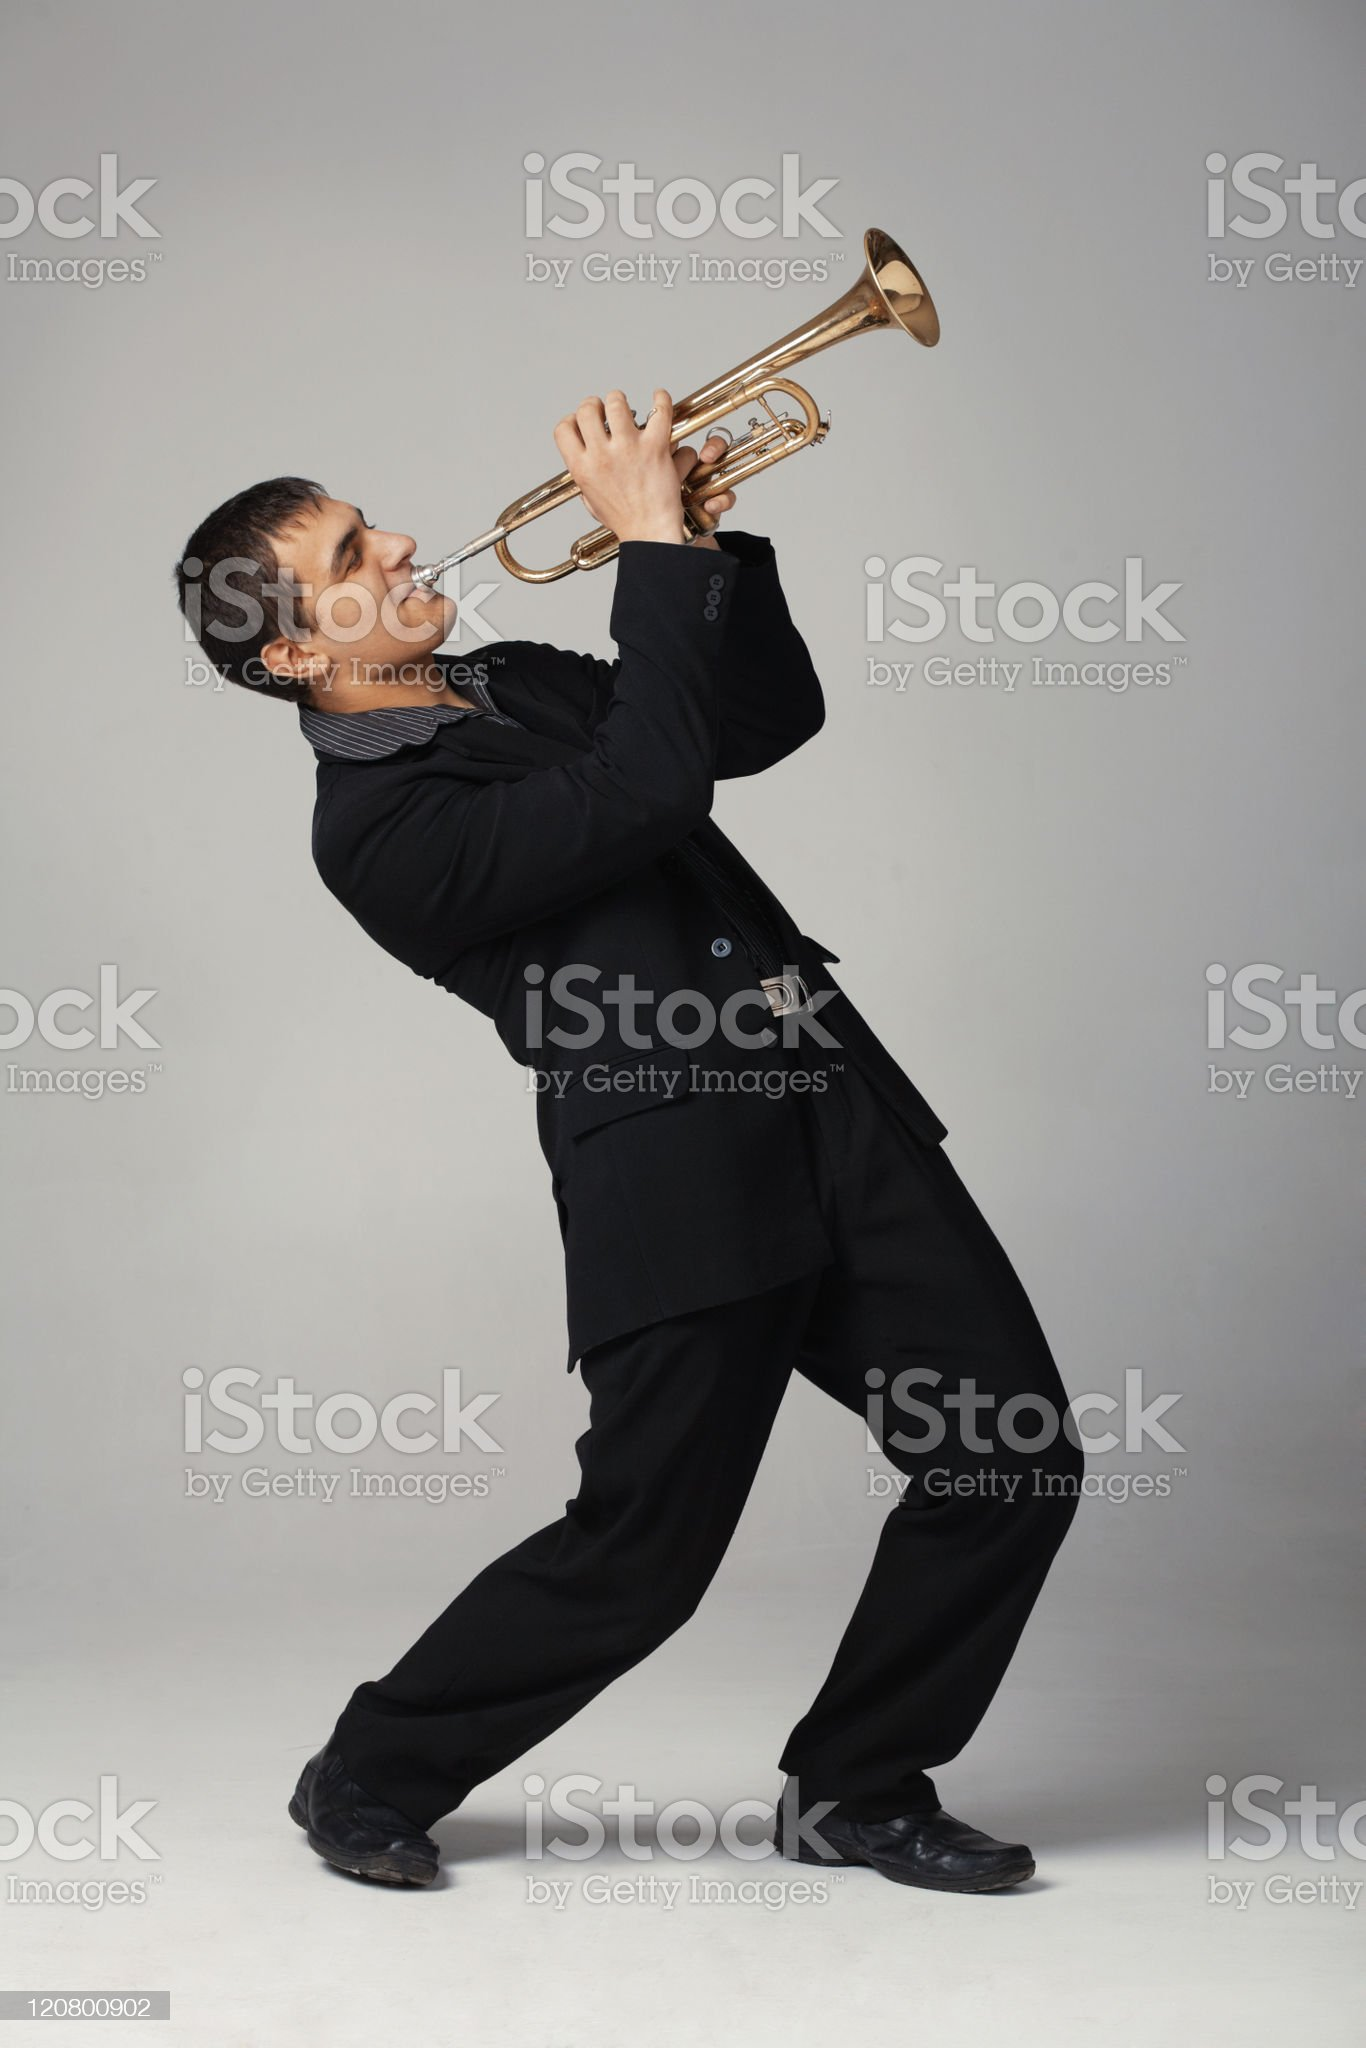 Man in black playing the trumpet royalty-free stock photo